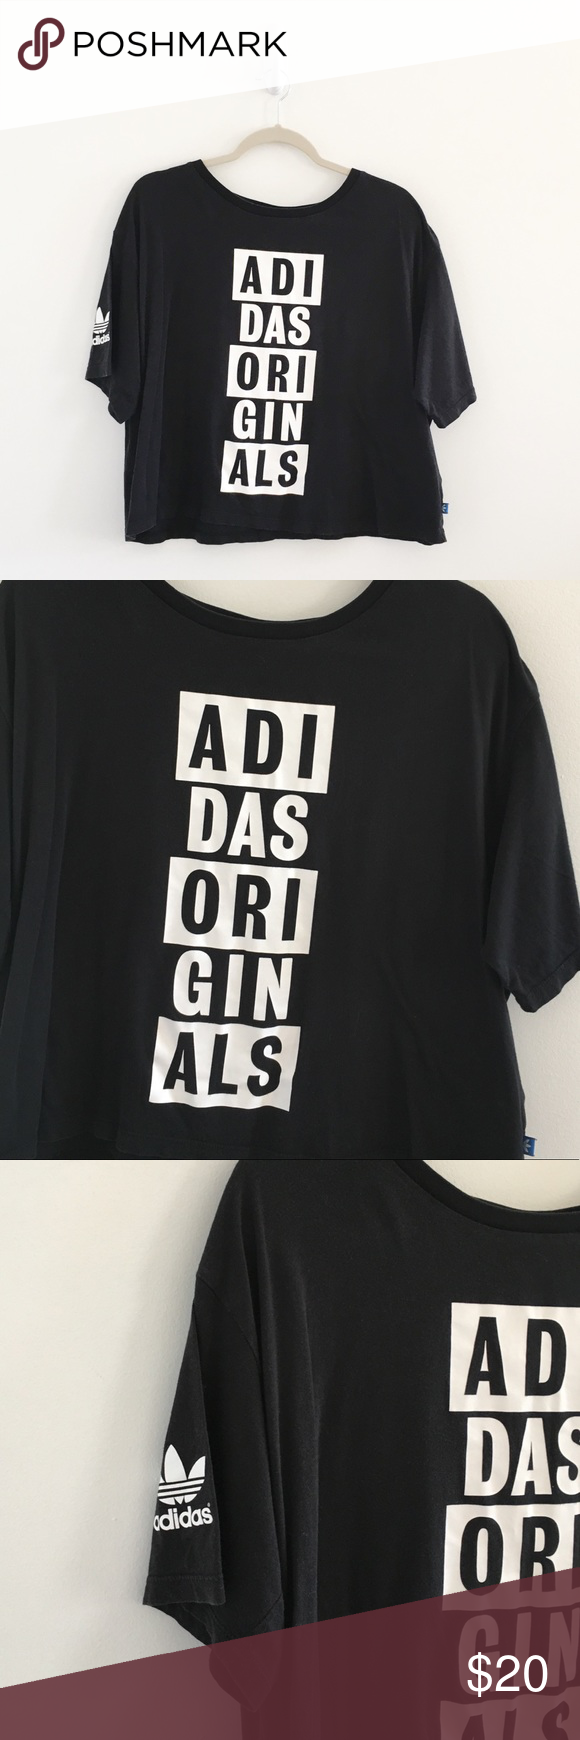 e18047b36 Adidas Originals Black Crop Graphic Tee Adidas Originals AO Black Graphic  Crop Tee size large.